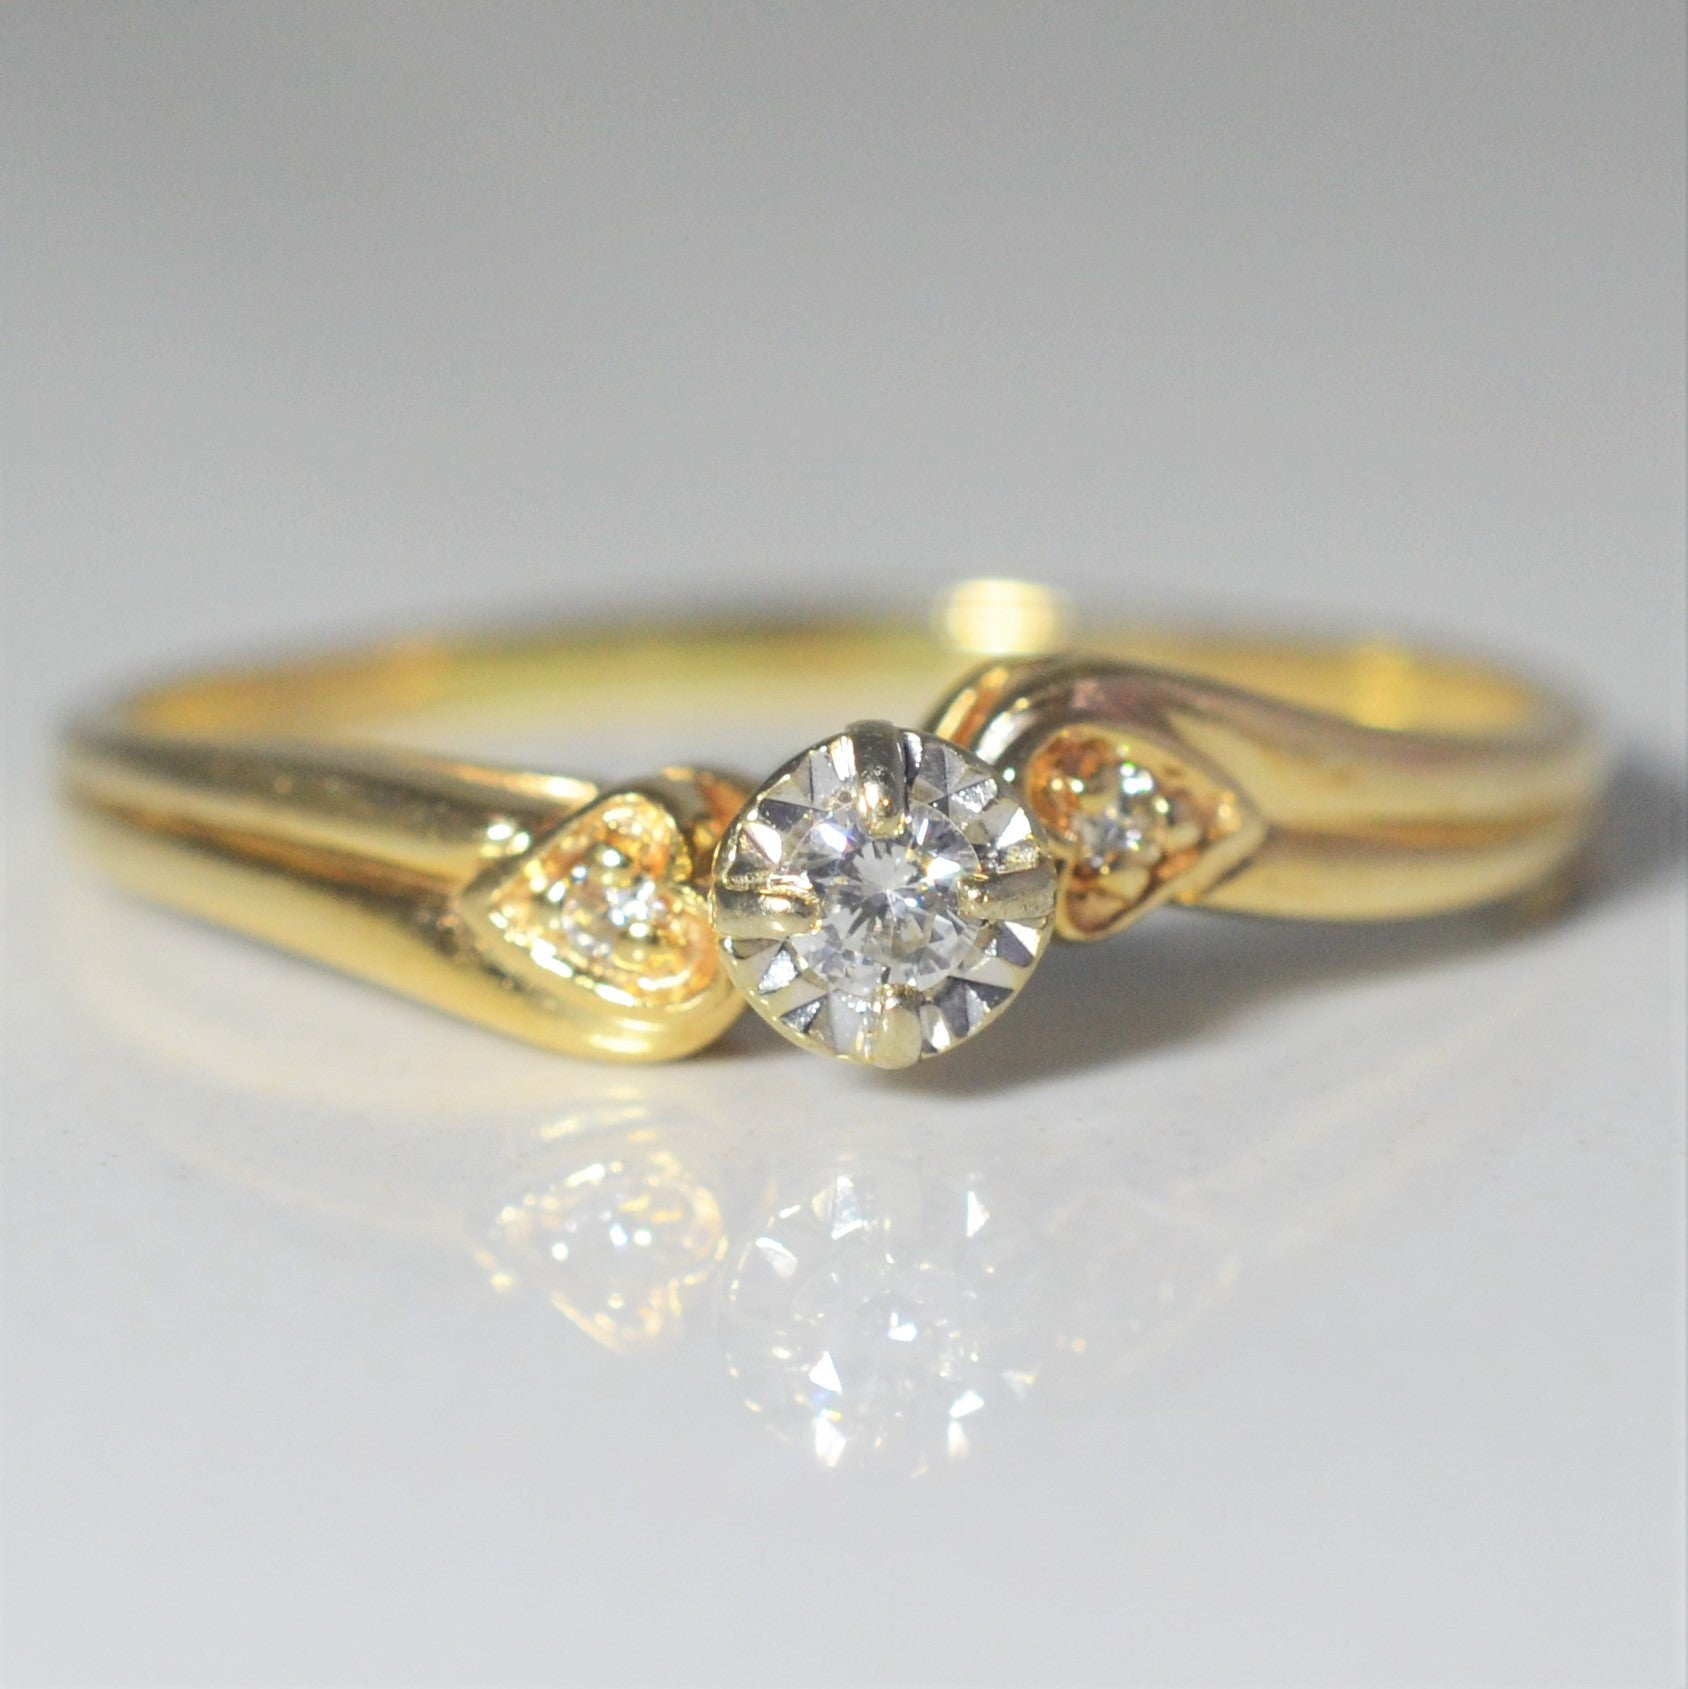 Bypass Heart Illusion Set Diamond Ring | 0.05 ctw, SZ 9 |